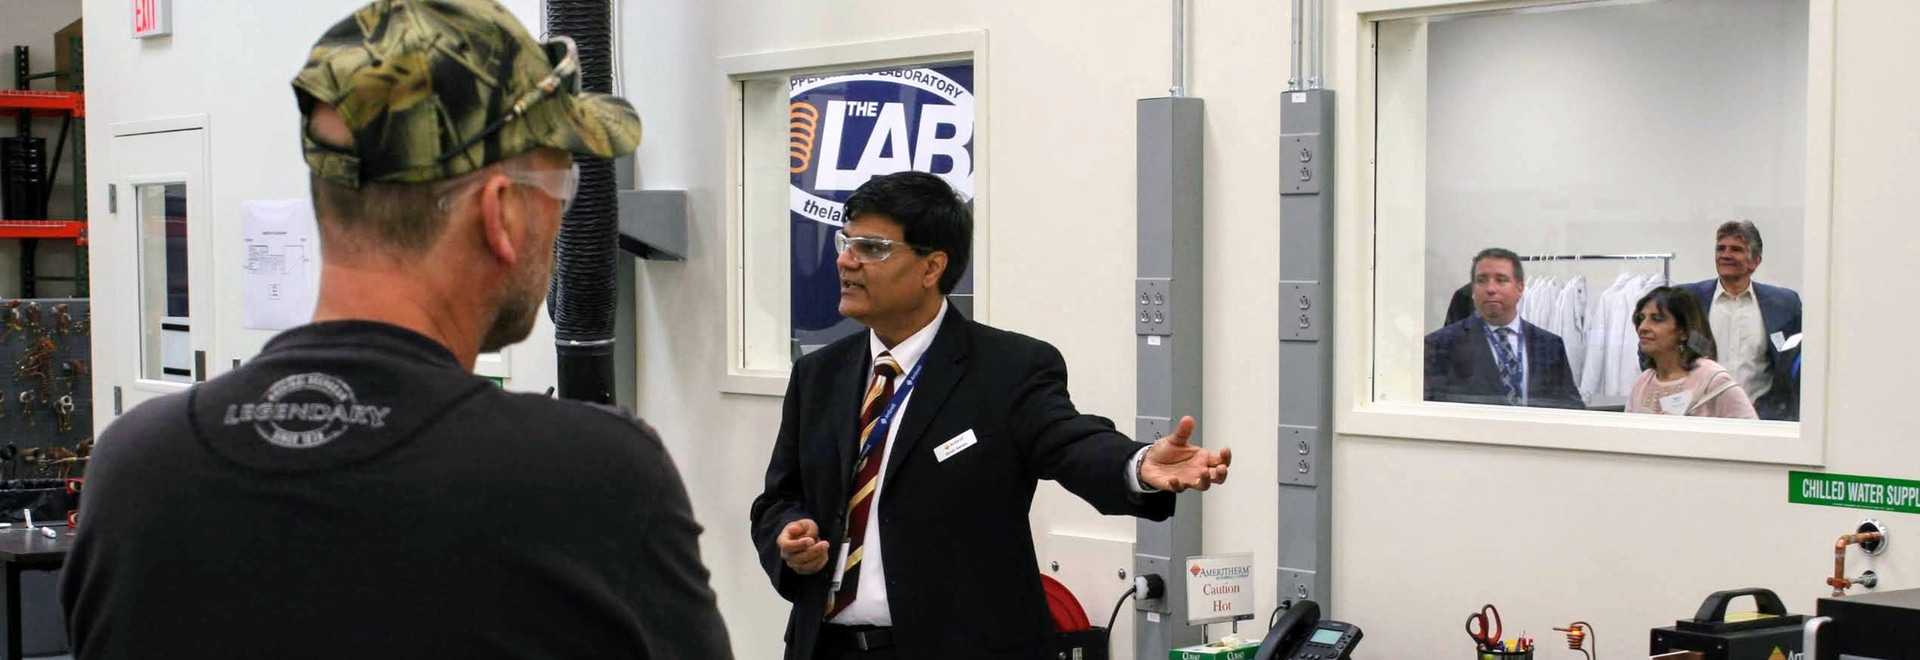 Ambrell's Dr. Dahake giving an induction heating demonstration